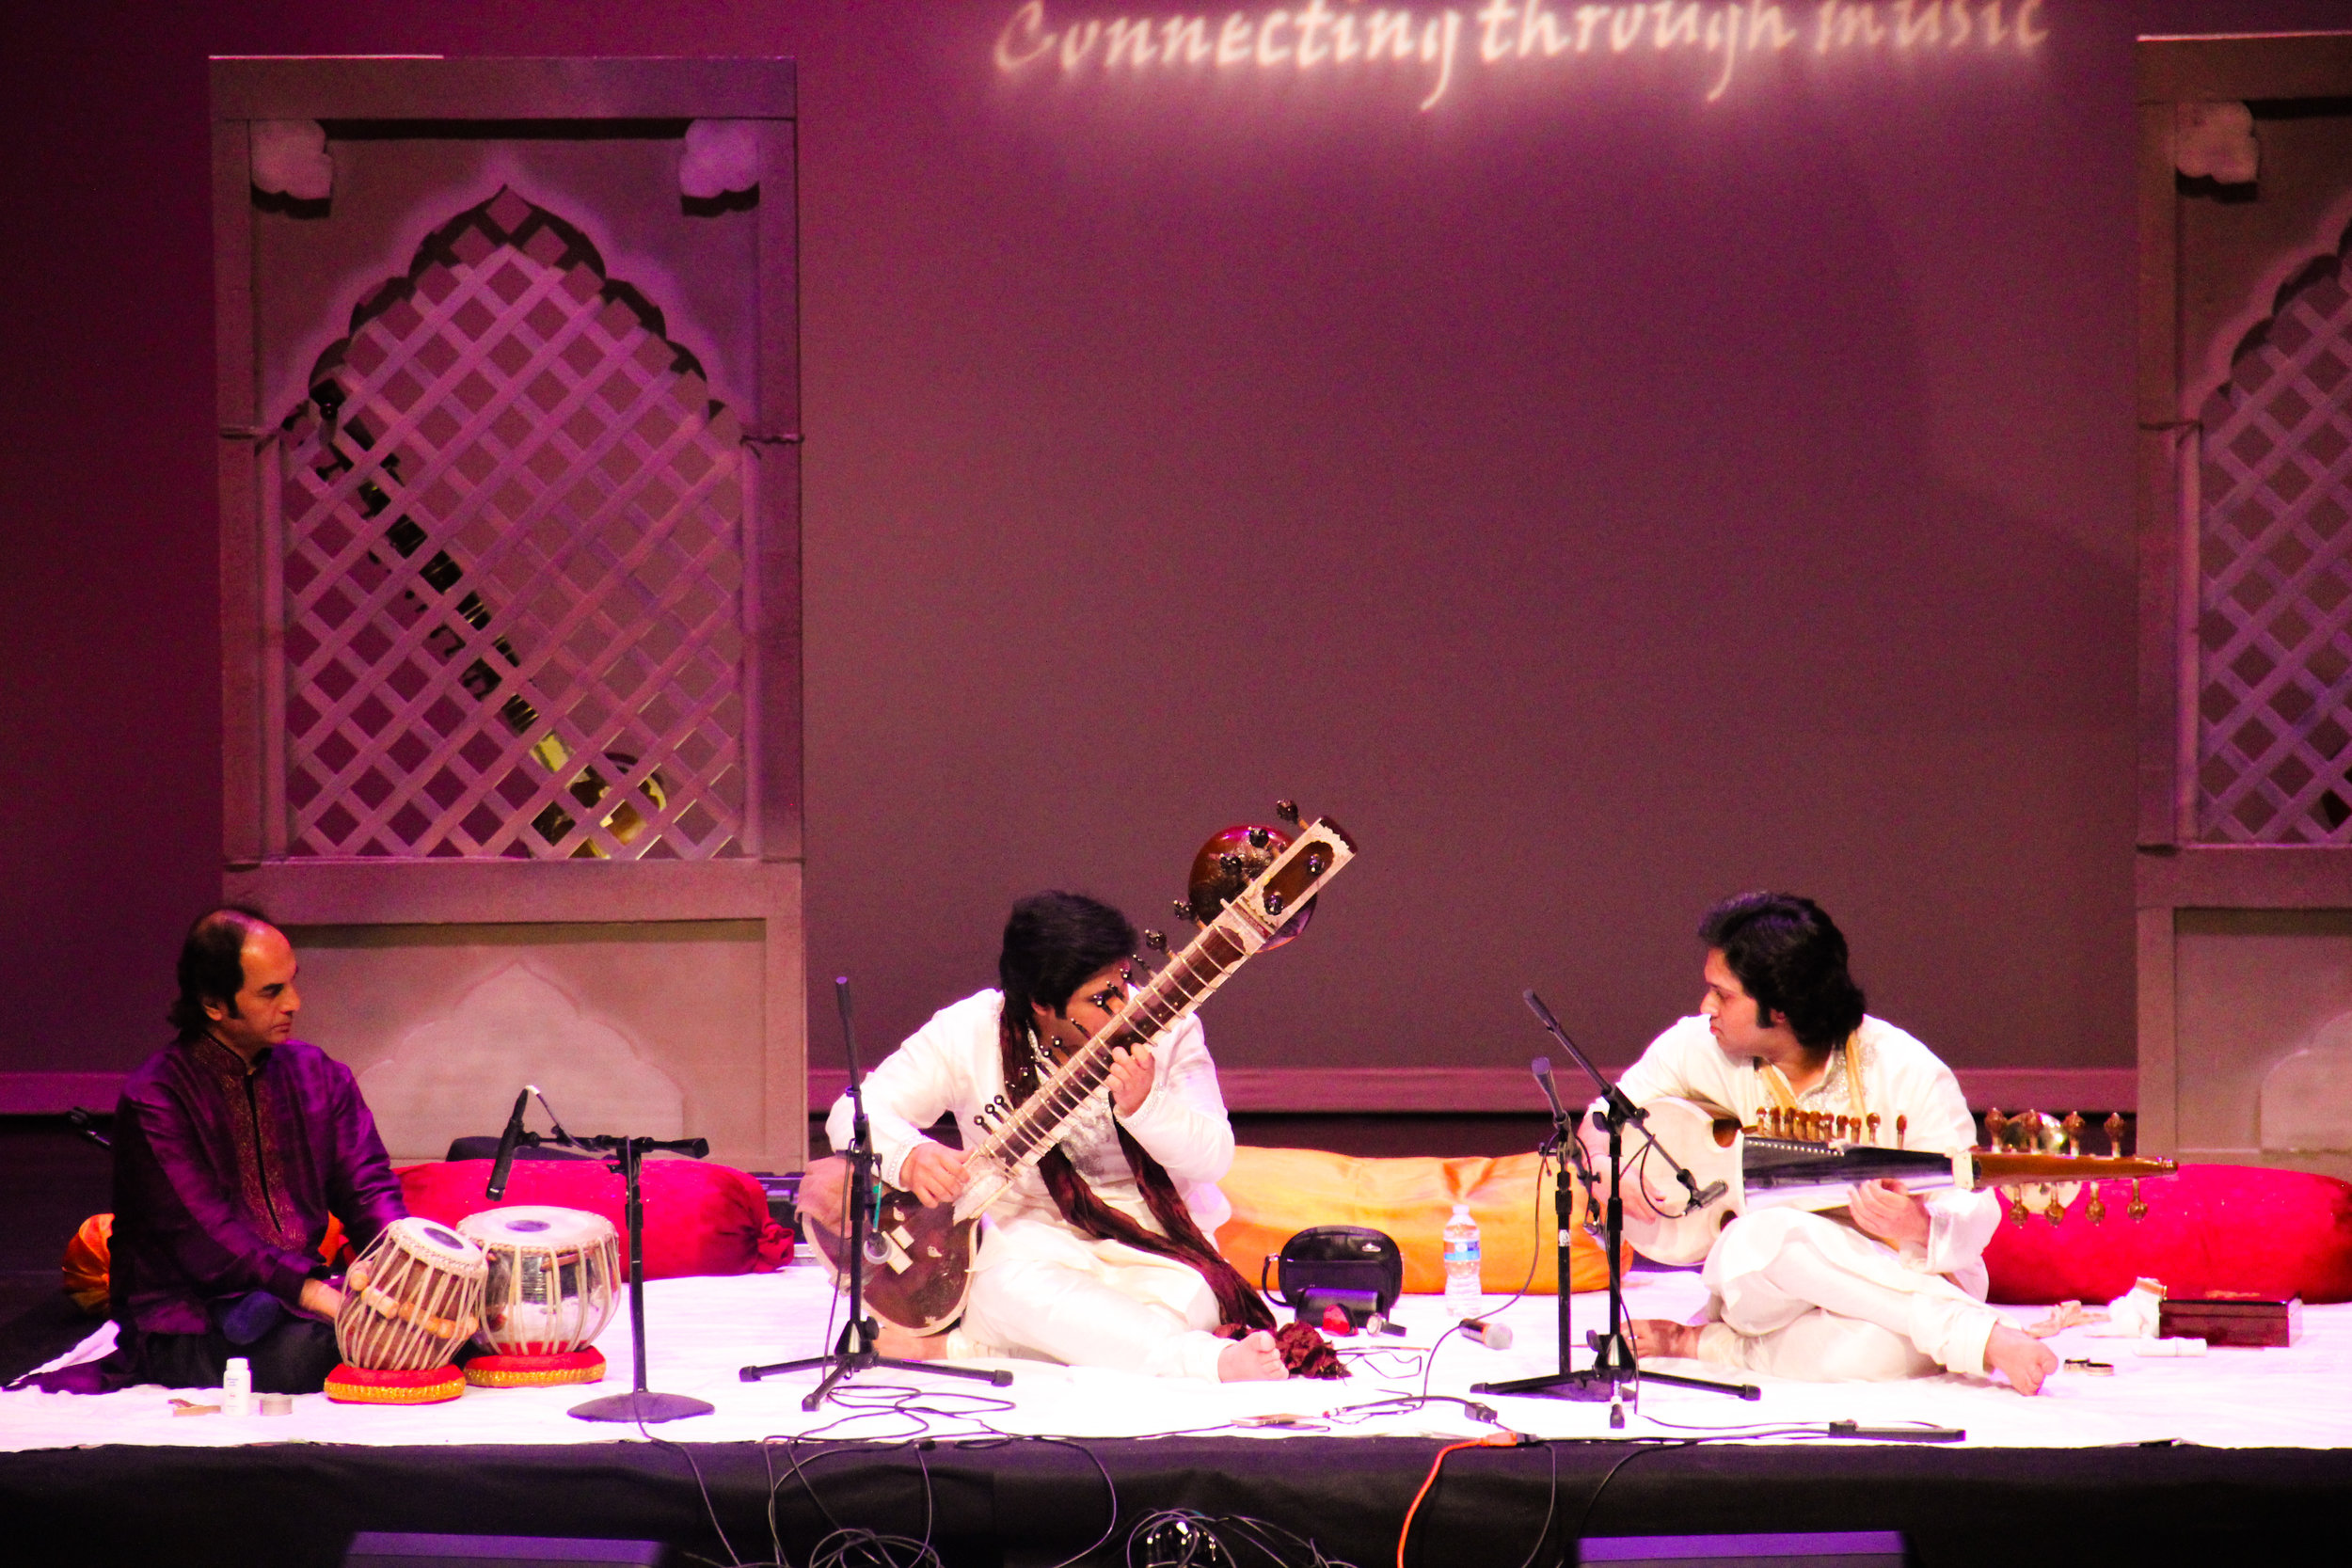 Lakshay &  Aayush during an intense musical dialogue at the LearnQuest Music Conference, Casey Theatre, Boston, United States